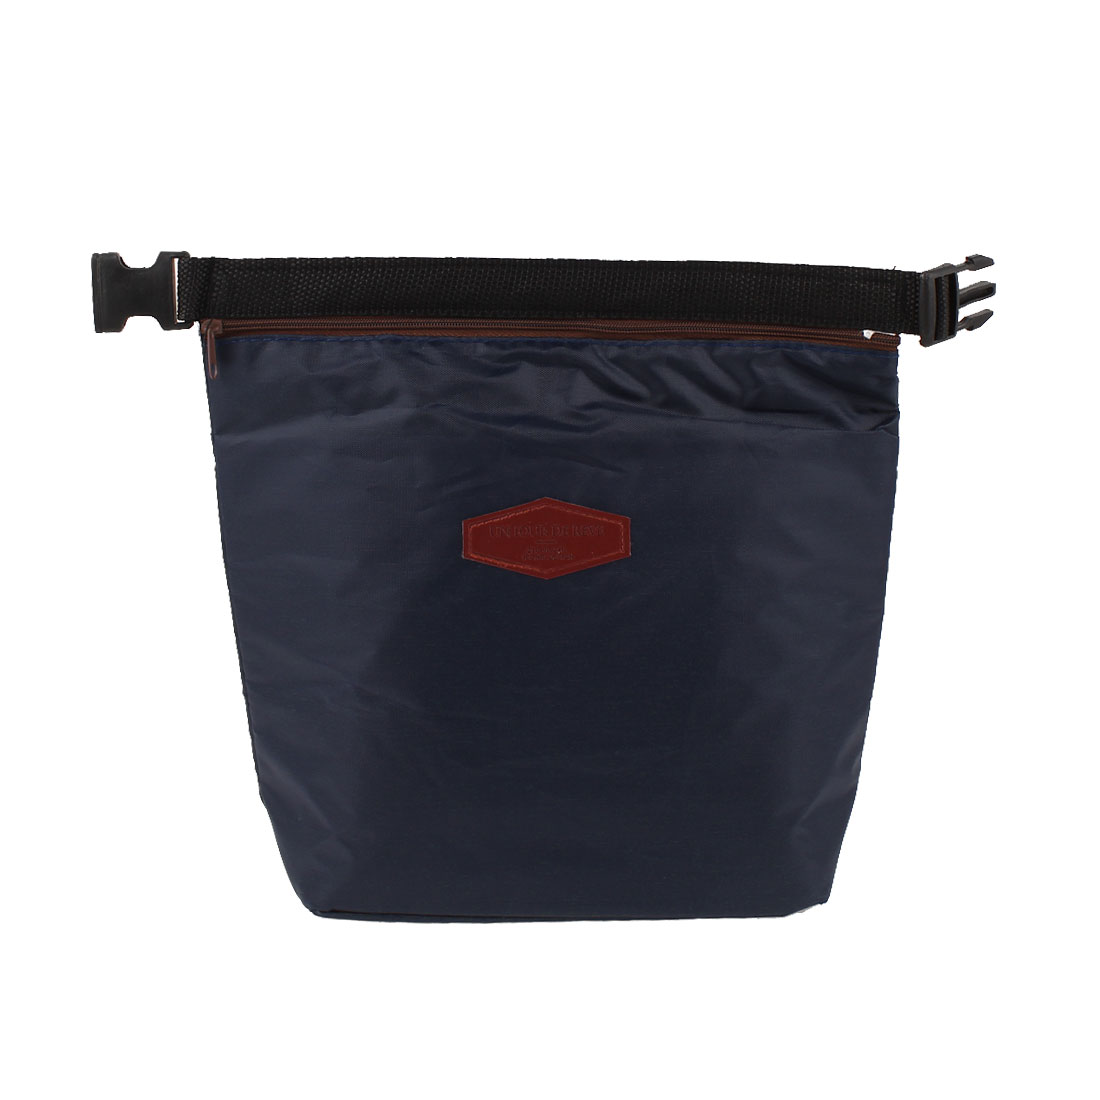 Insulated Nynon Zipper Closure Lunchbox Lunch Bag Dark Blue